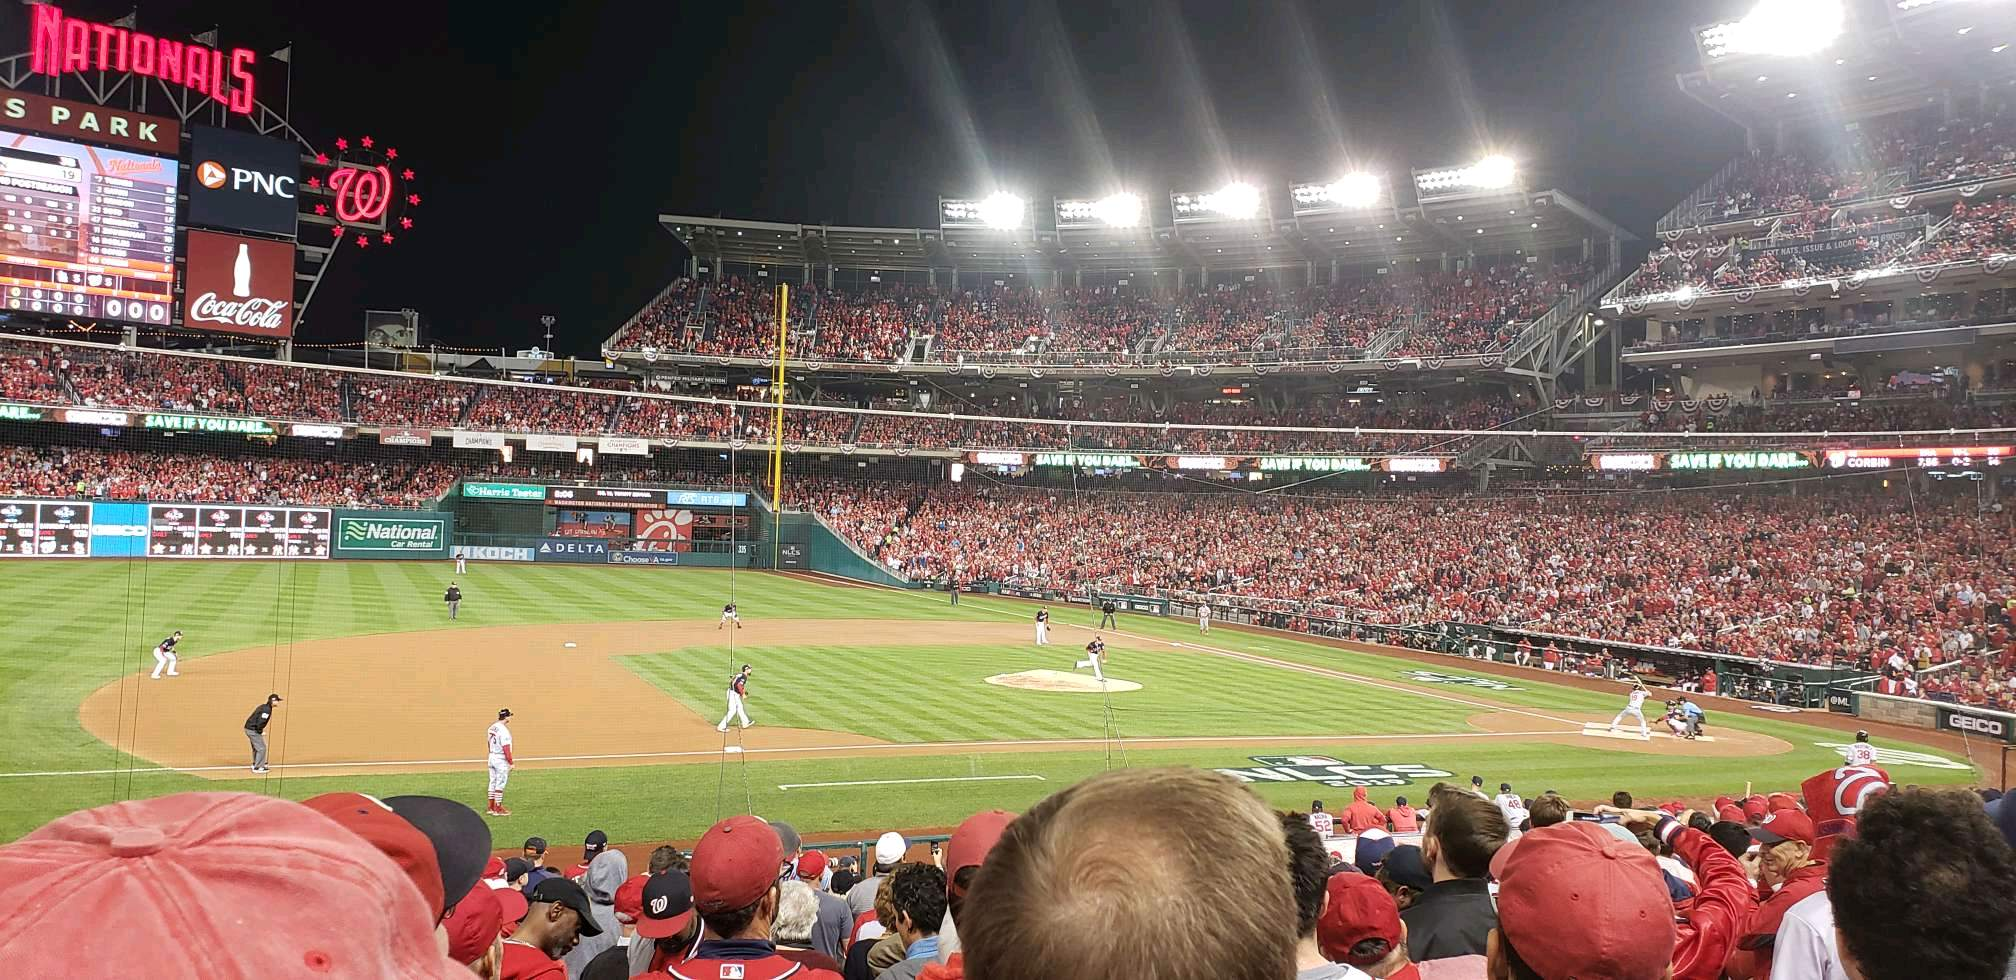 Nationals Park Section 115 Row cc Seat 17